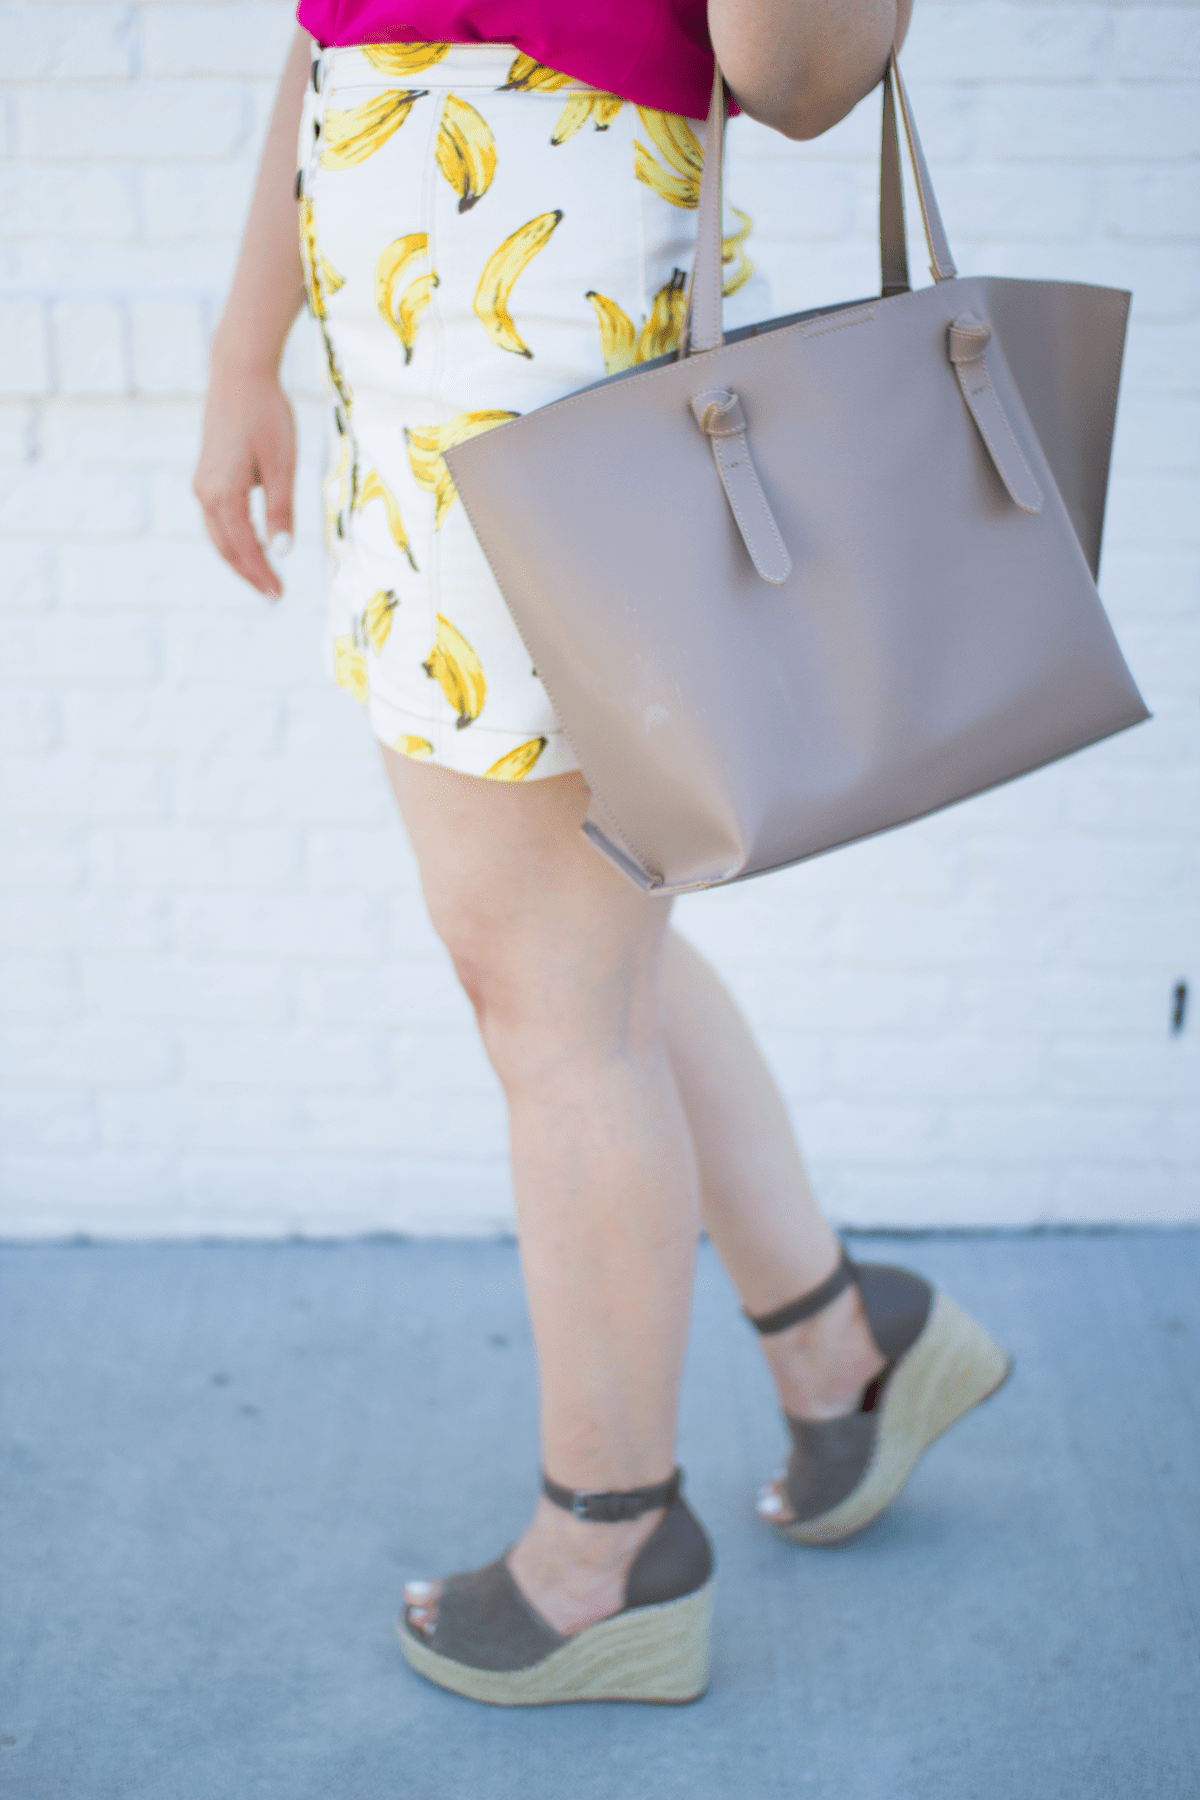 Lacey Anne Douthat from The Glitter Gospel Blog shares her take on the fruit print trend in this banana print skirt from Urban Outfitters. Fruit print, banana print, urban outfitters, topshop, sole society, dsw, baublebar, karen walker, summer style, blonde, espadrilles